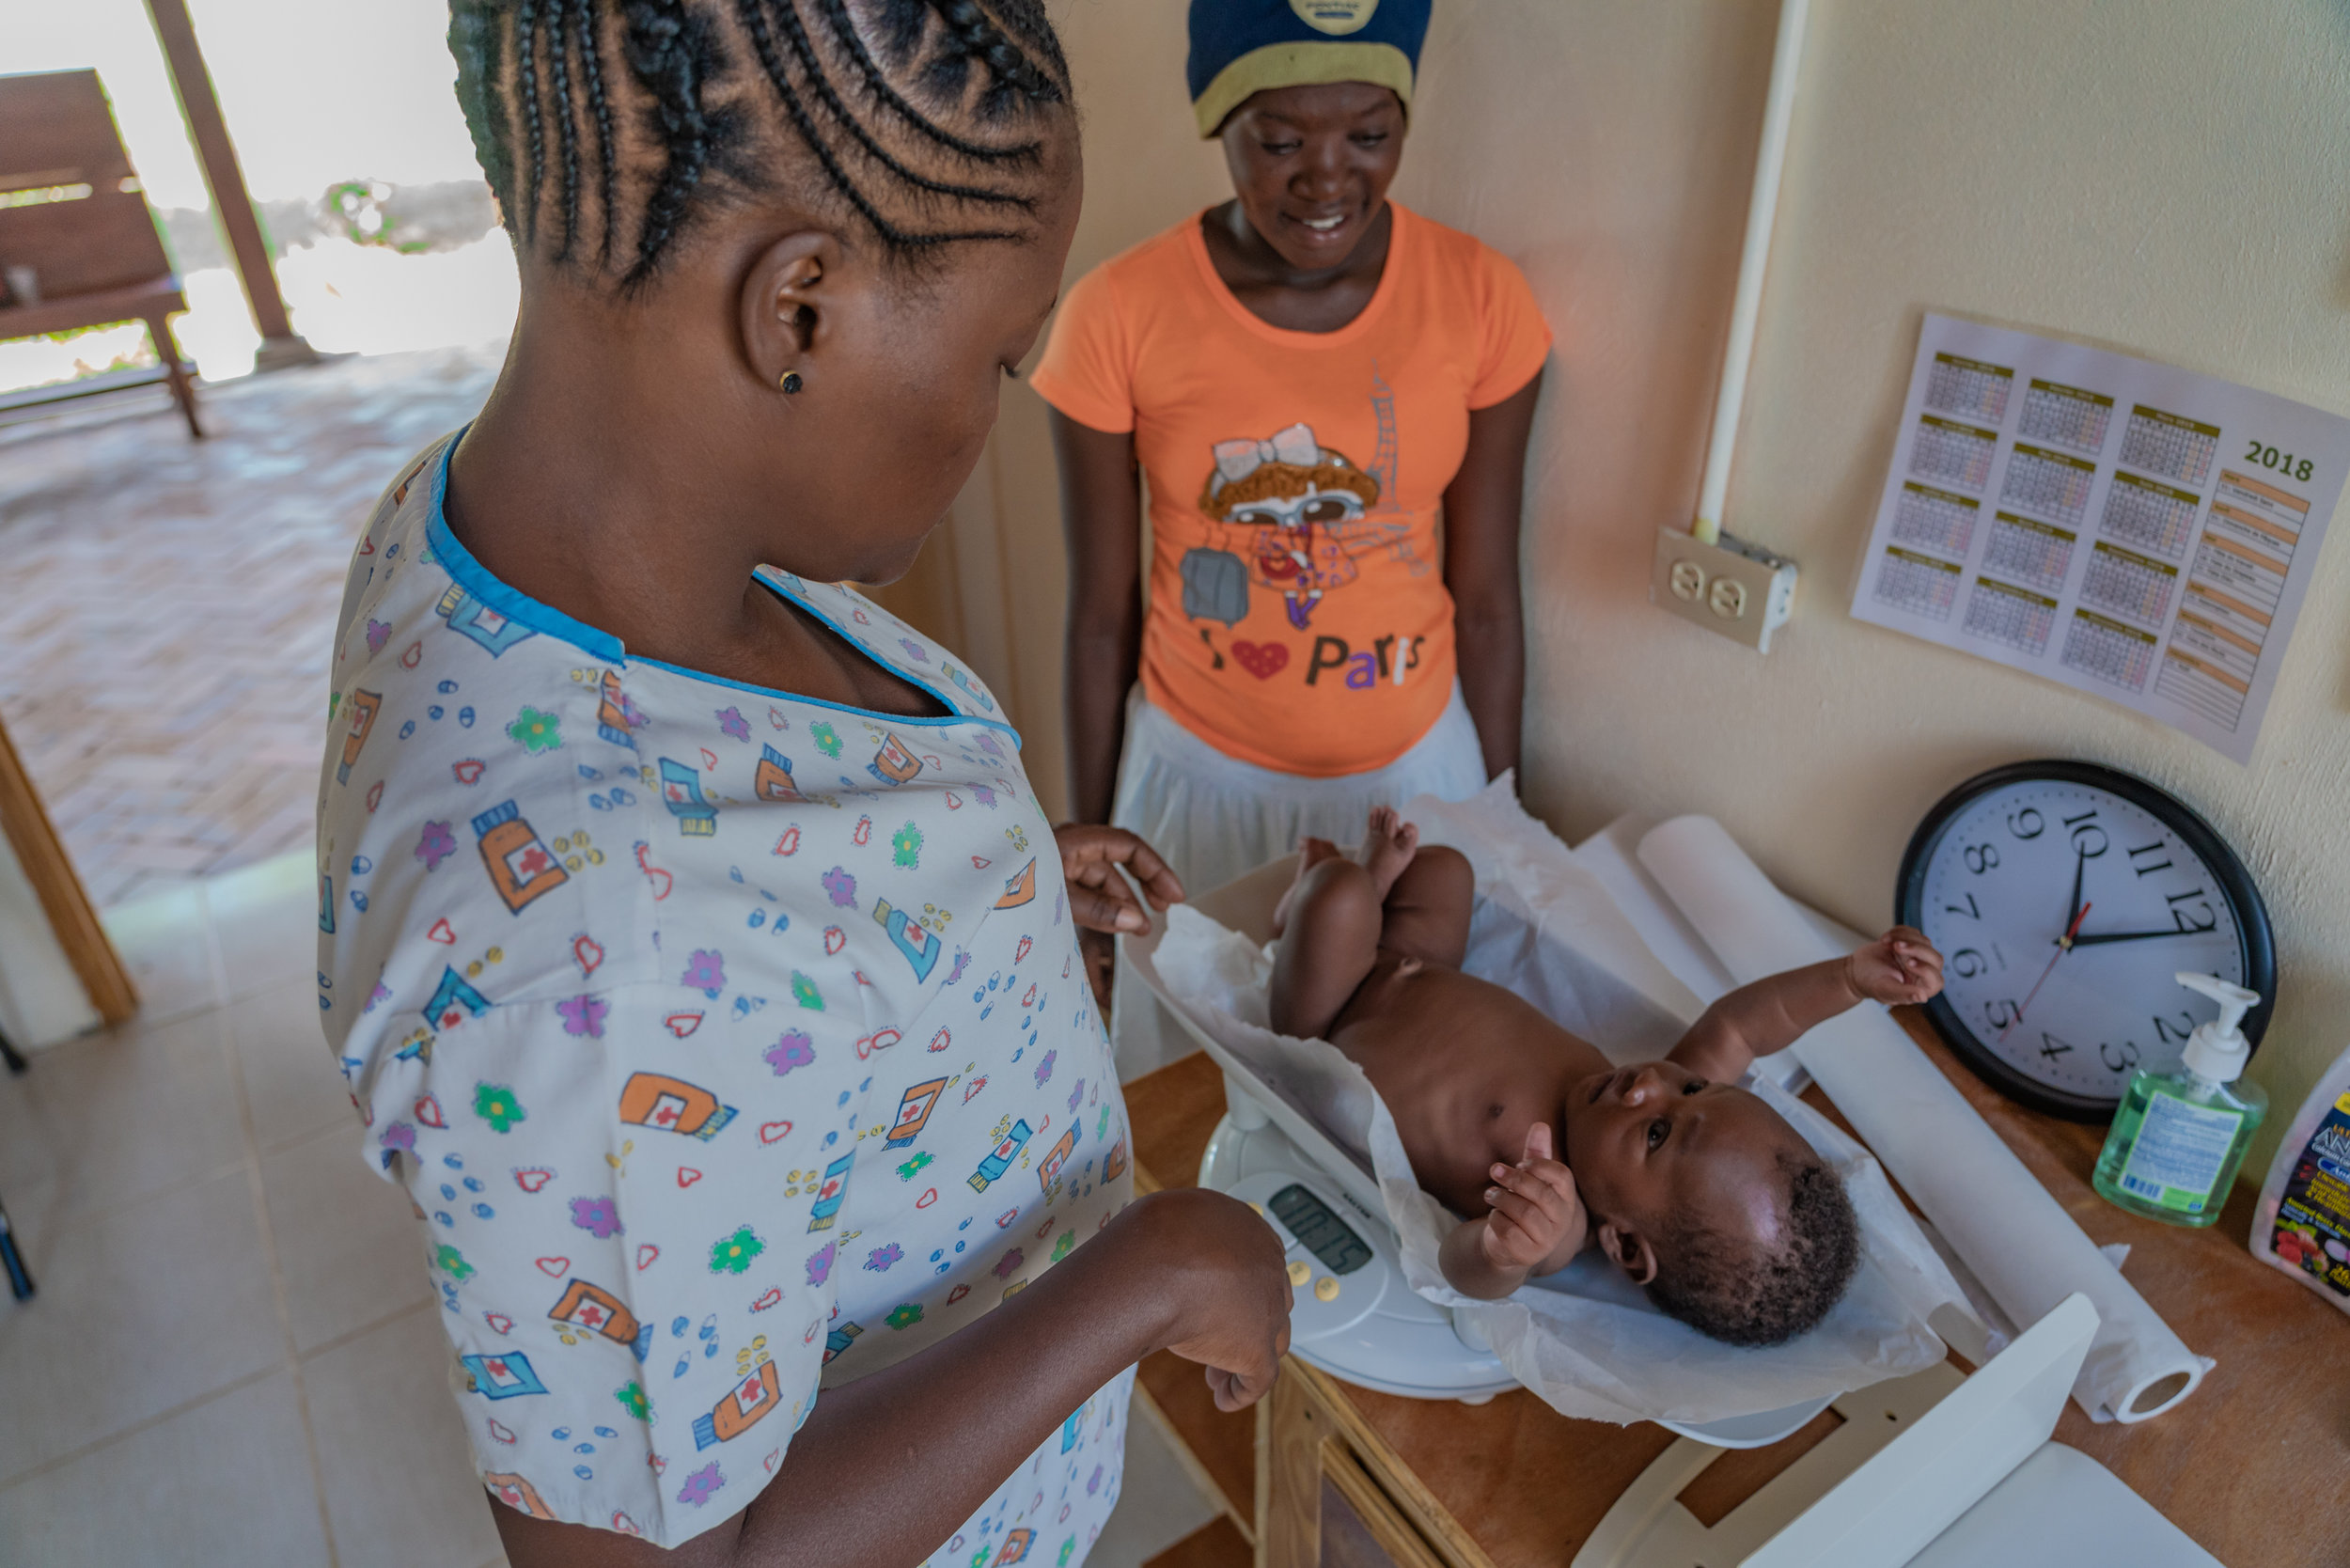 30. Diana M. - I recognize that in Haiti, only 32% of healthcare facilities provide essential medications, and just 31% have basic, functioning medical equipment. This is a human rights issue and I am contributing to the solution through my support.